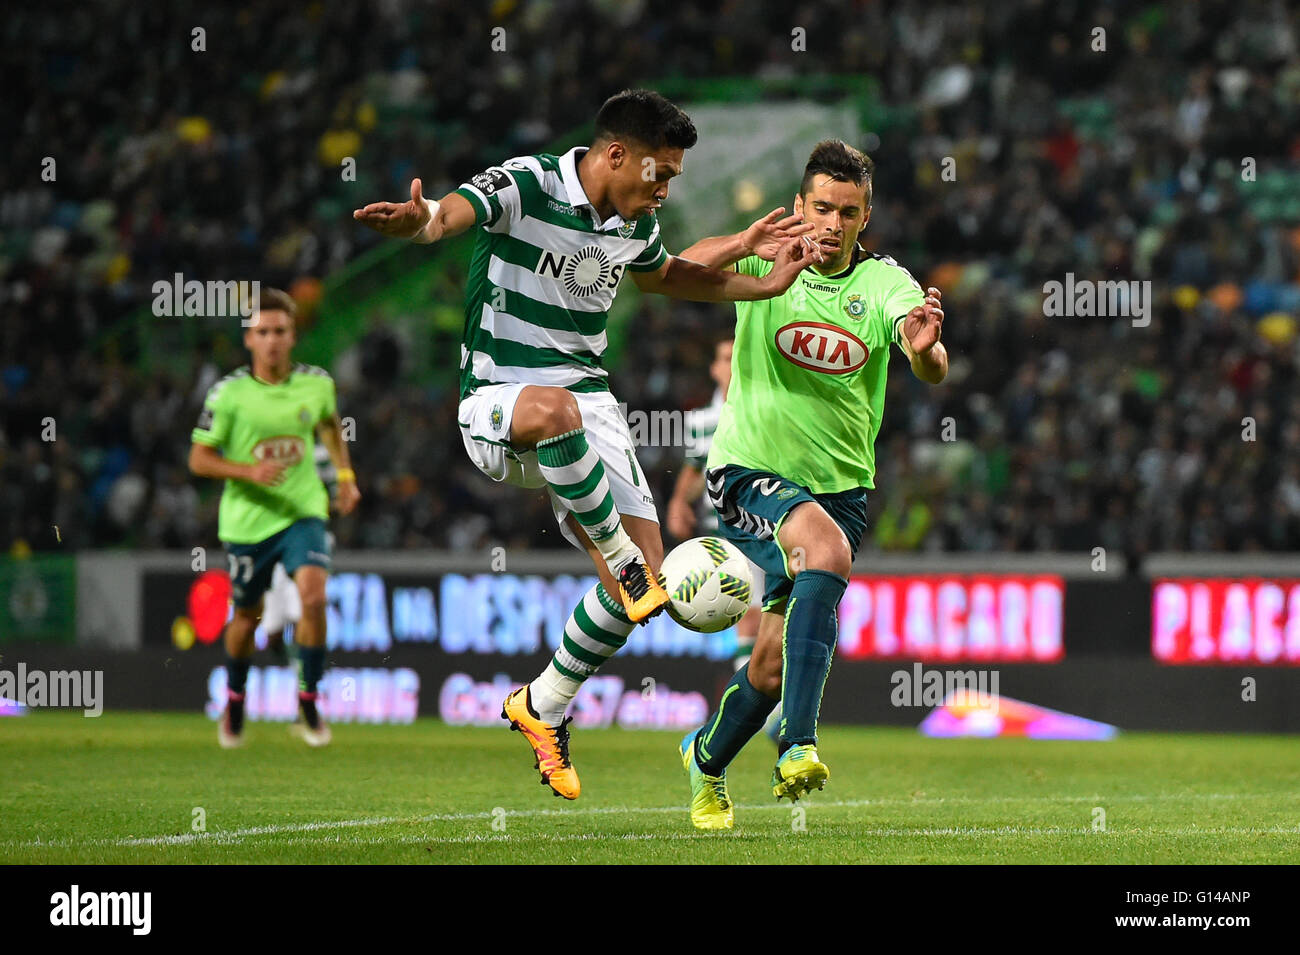 Portugal, Lisbon,May 07,2016 - SPORTING-V.SETÚBAL  - Teo Gutierrez (C), Sporting player, during Portuguese - Stock Image